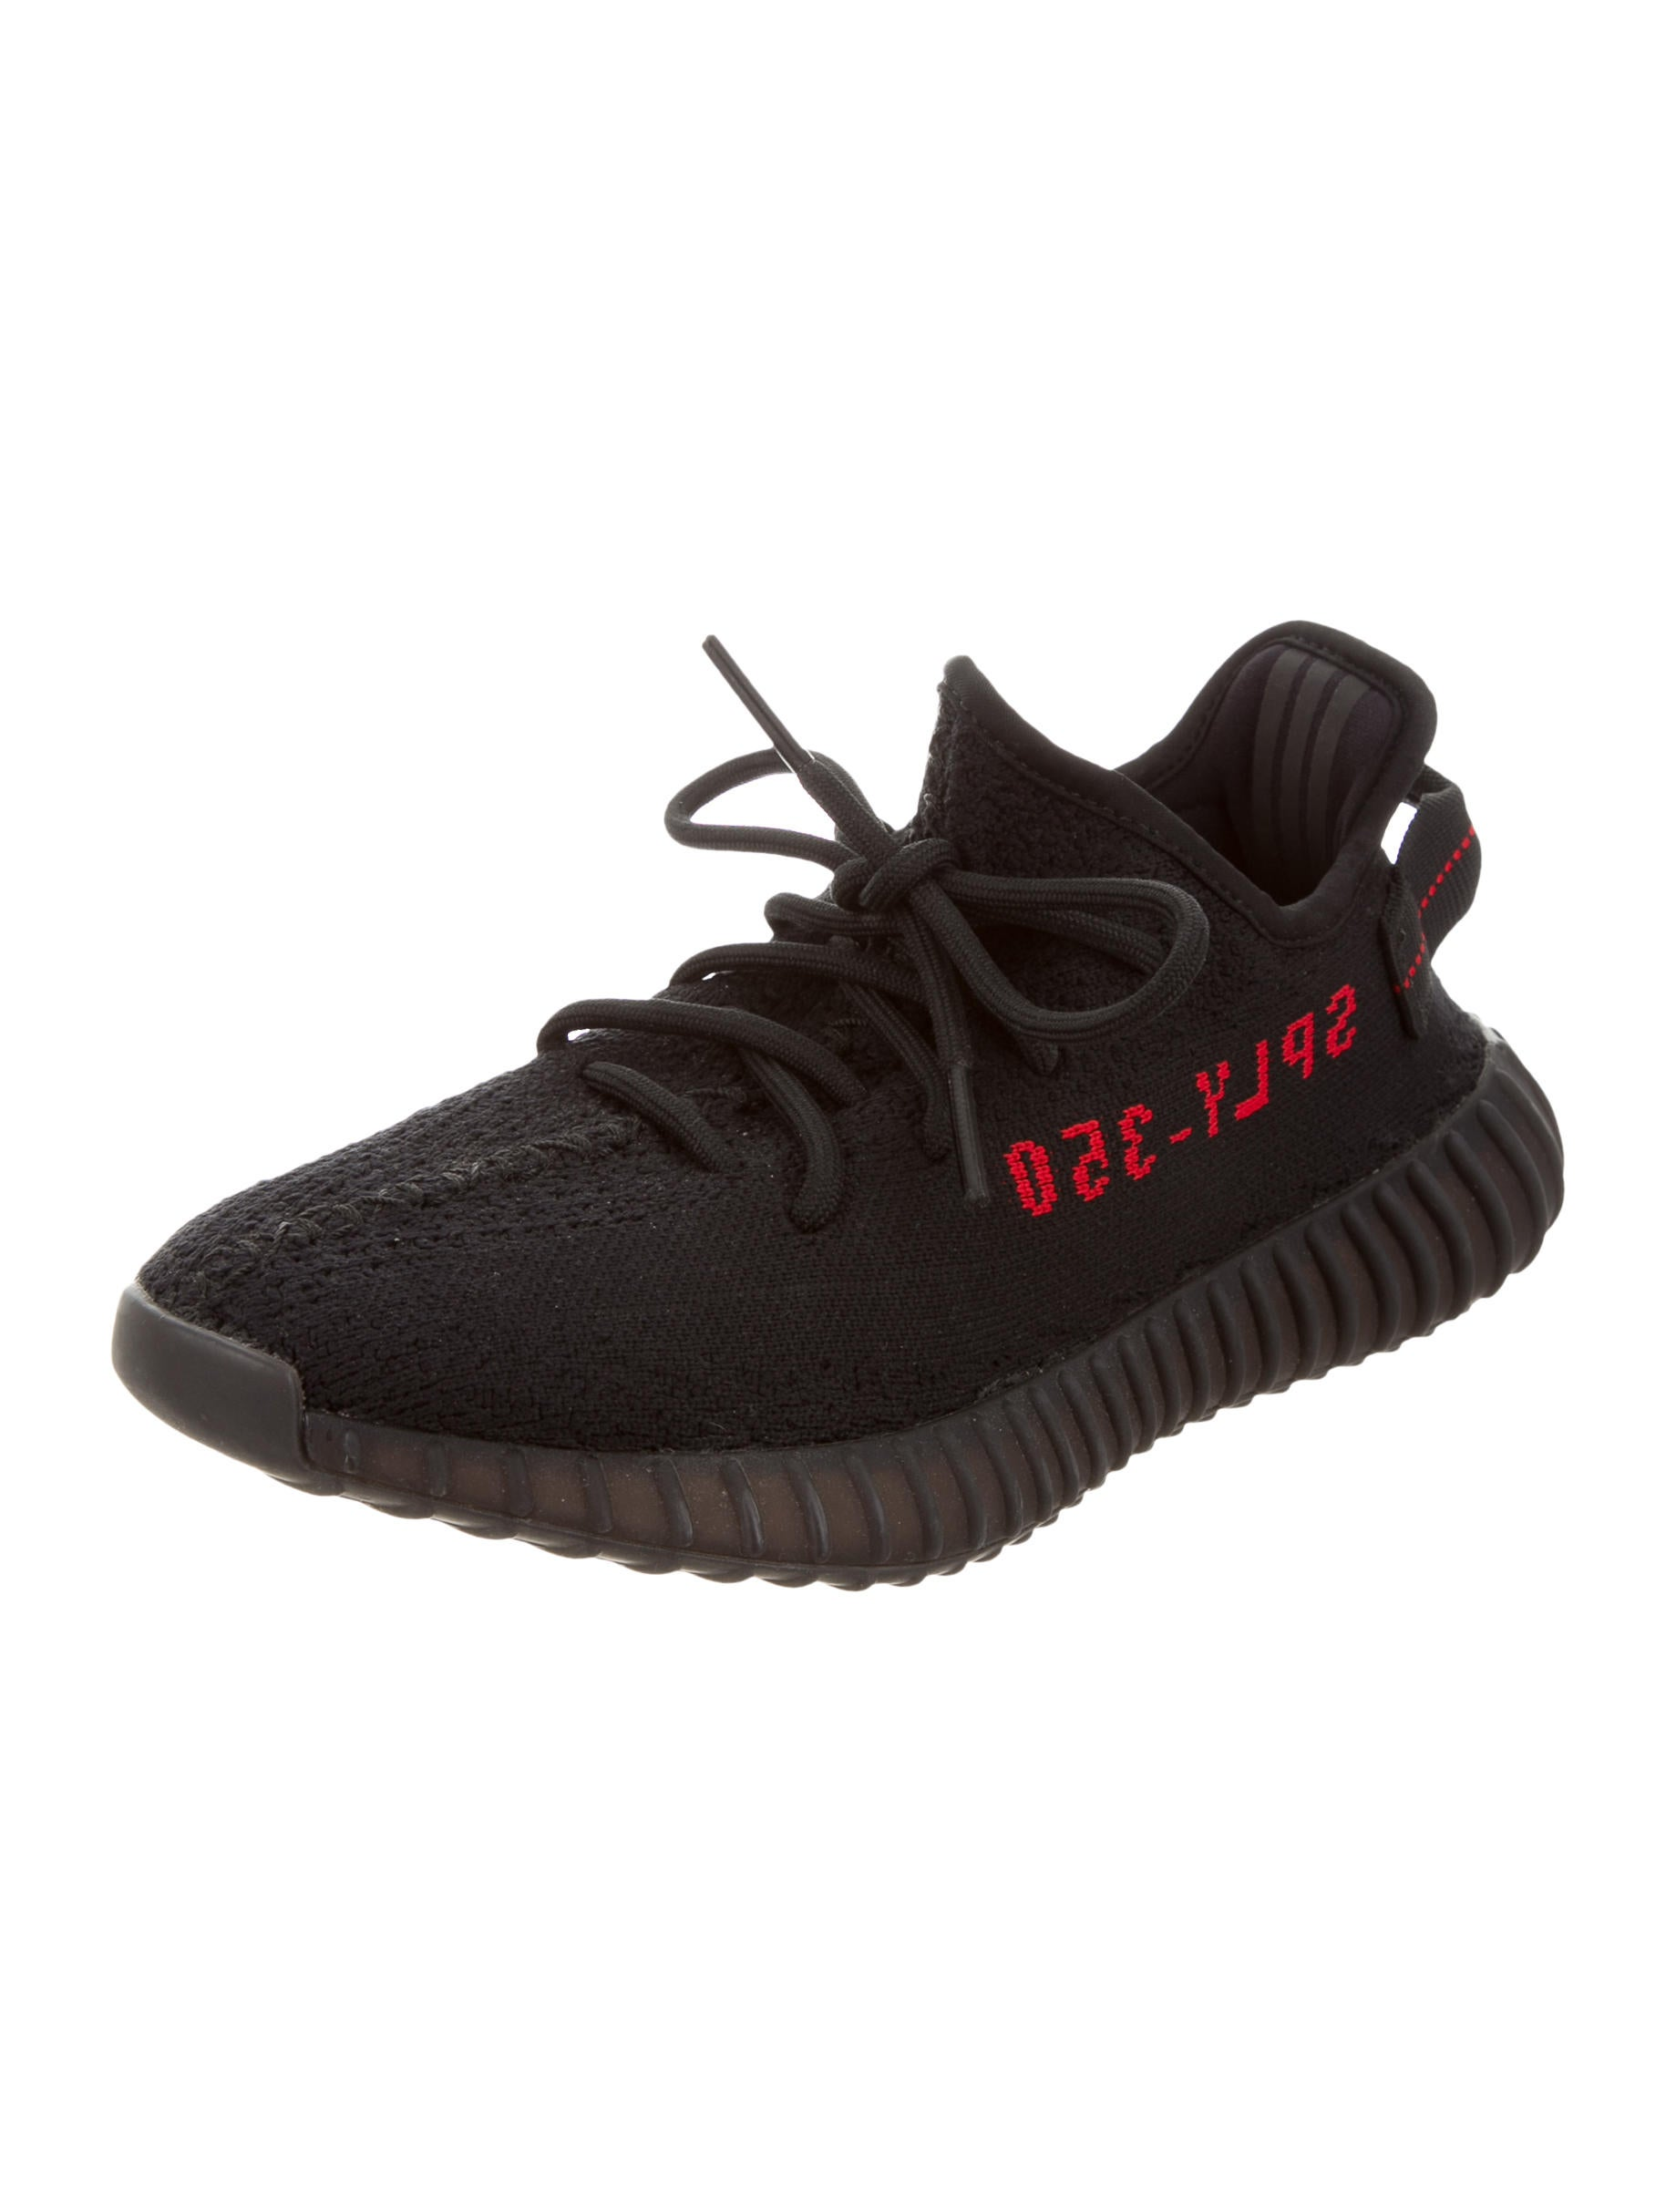 Yeezy X Adidas Boost 350 V2 Sneakers Shoes Wyead20249